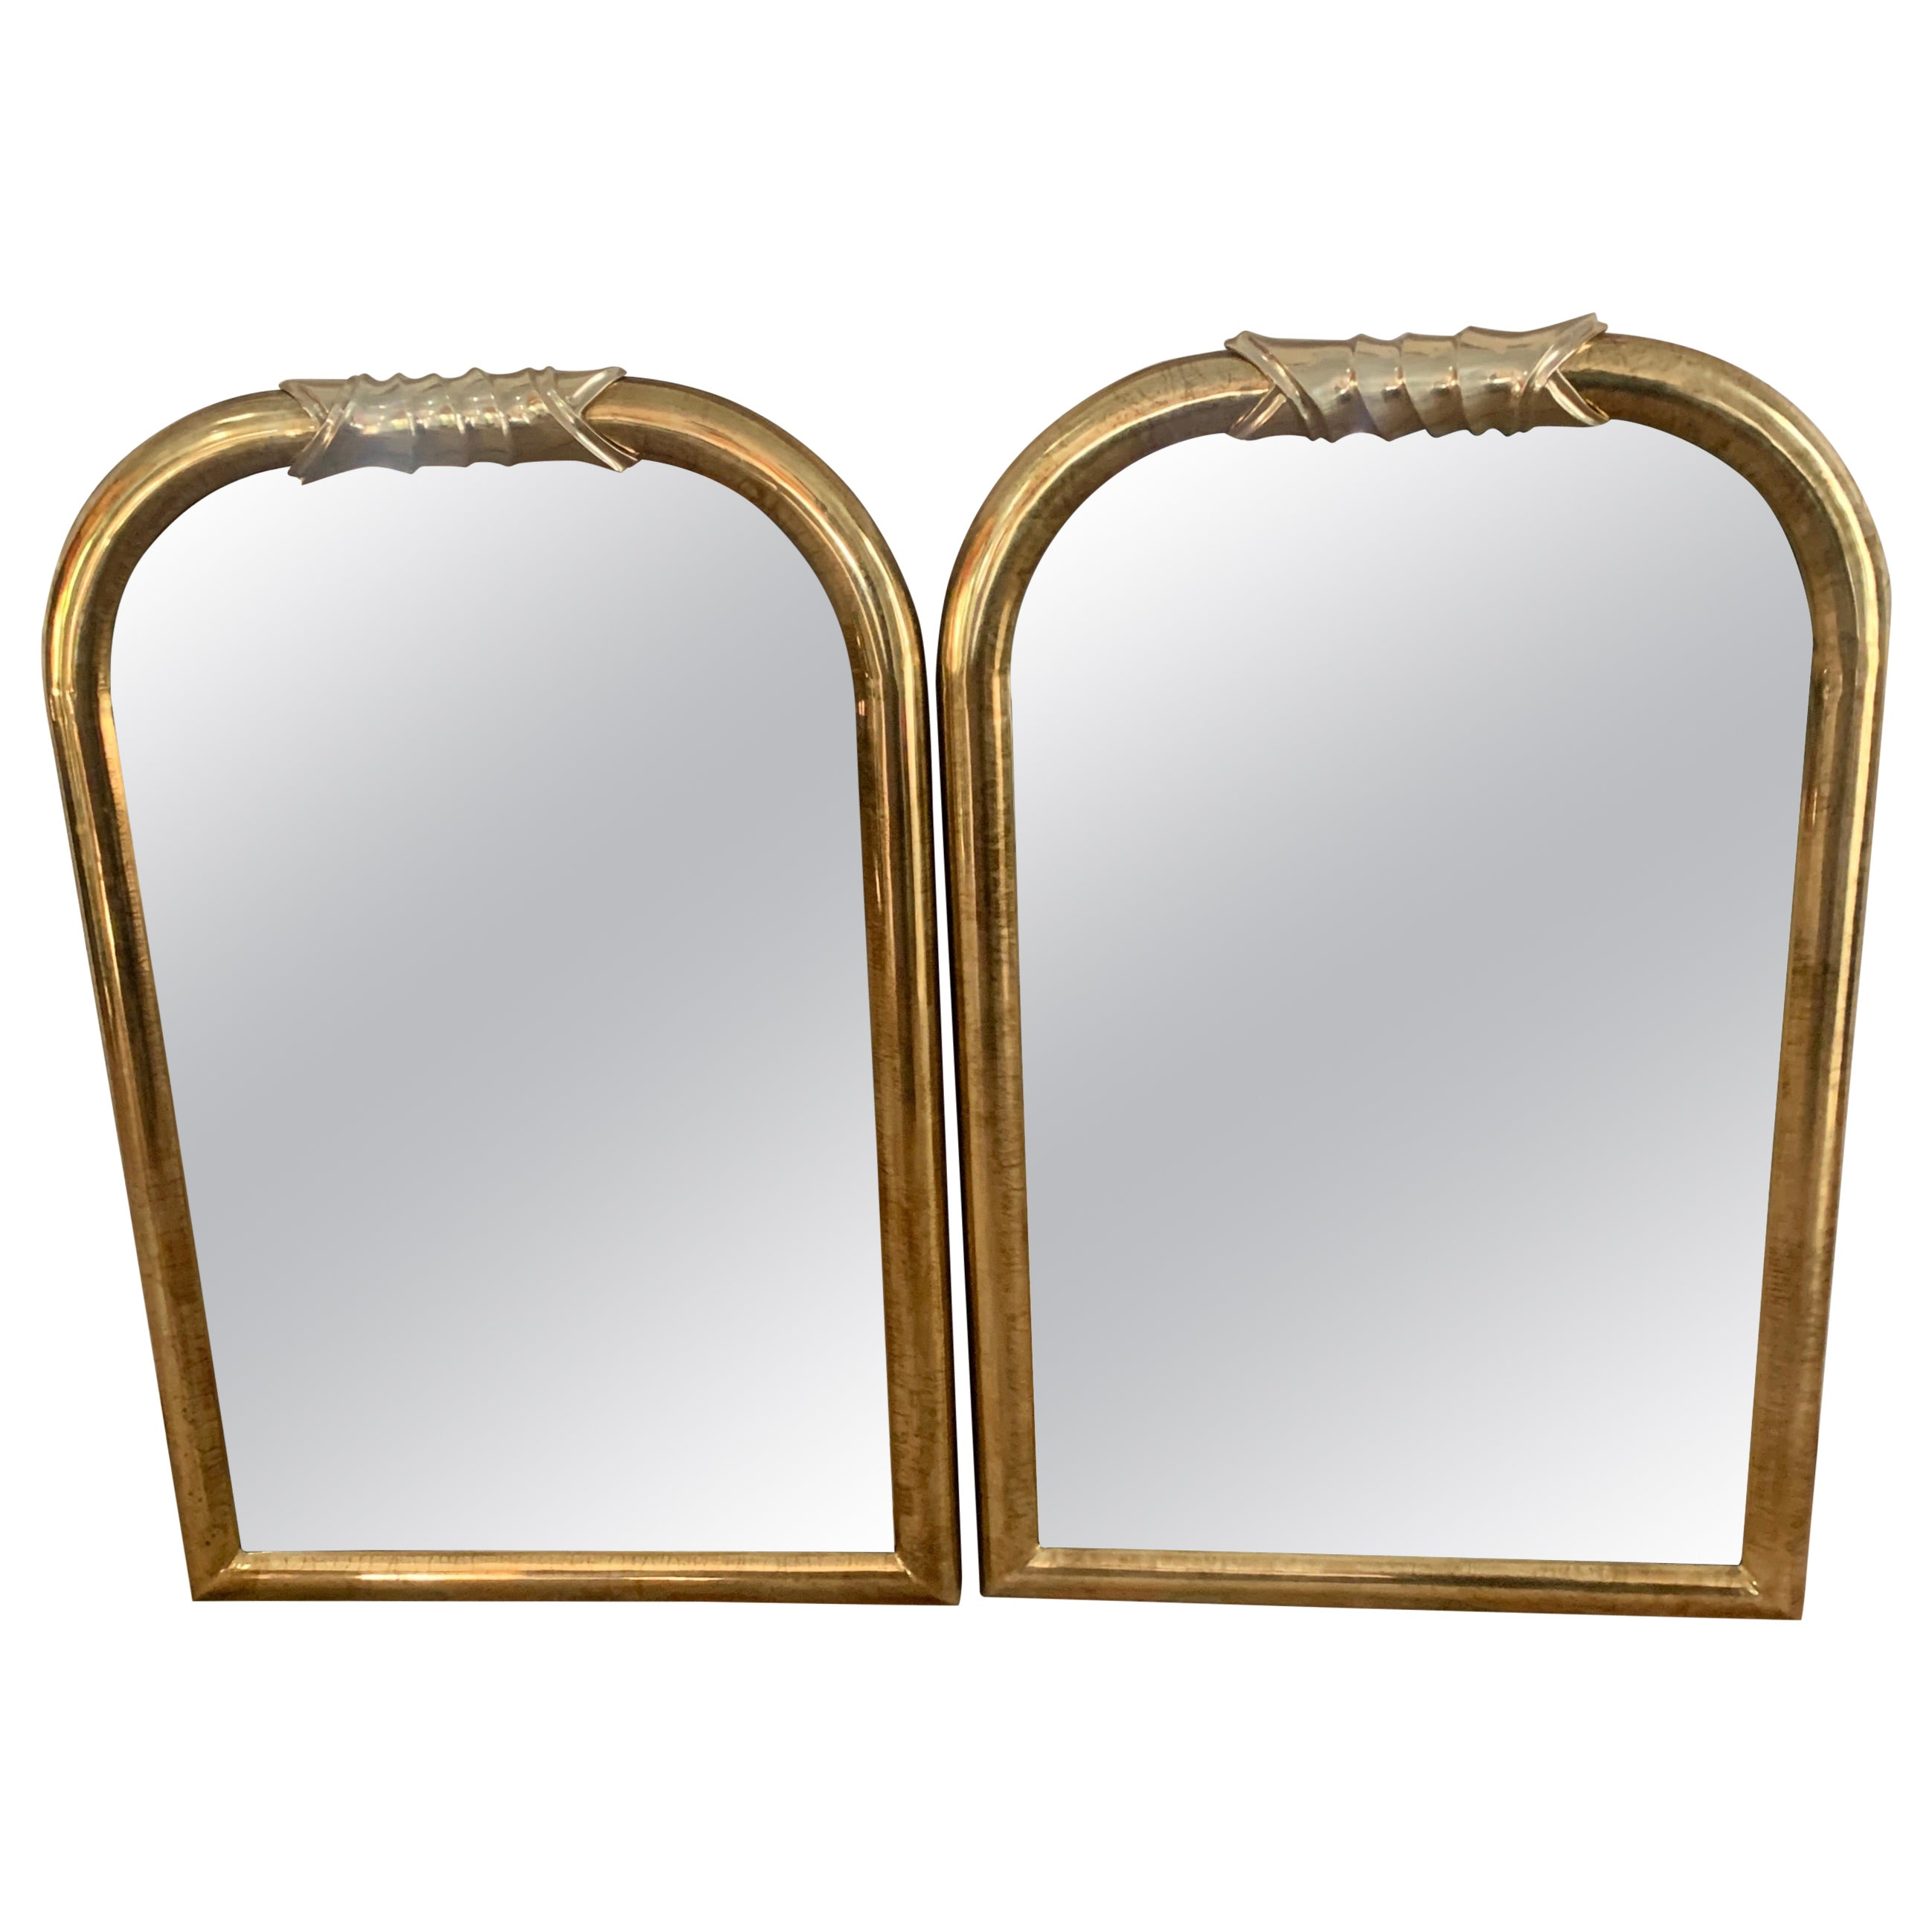 Pair of Brass Wall Mirrors